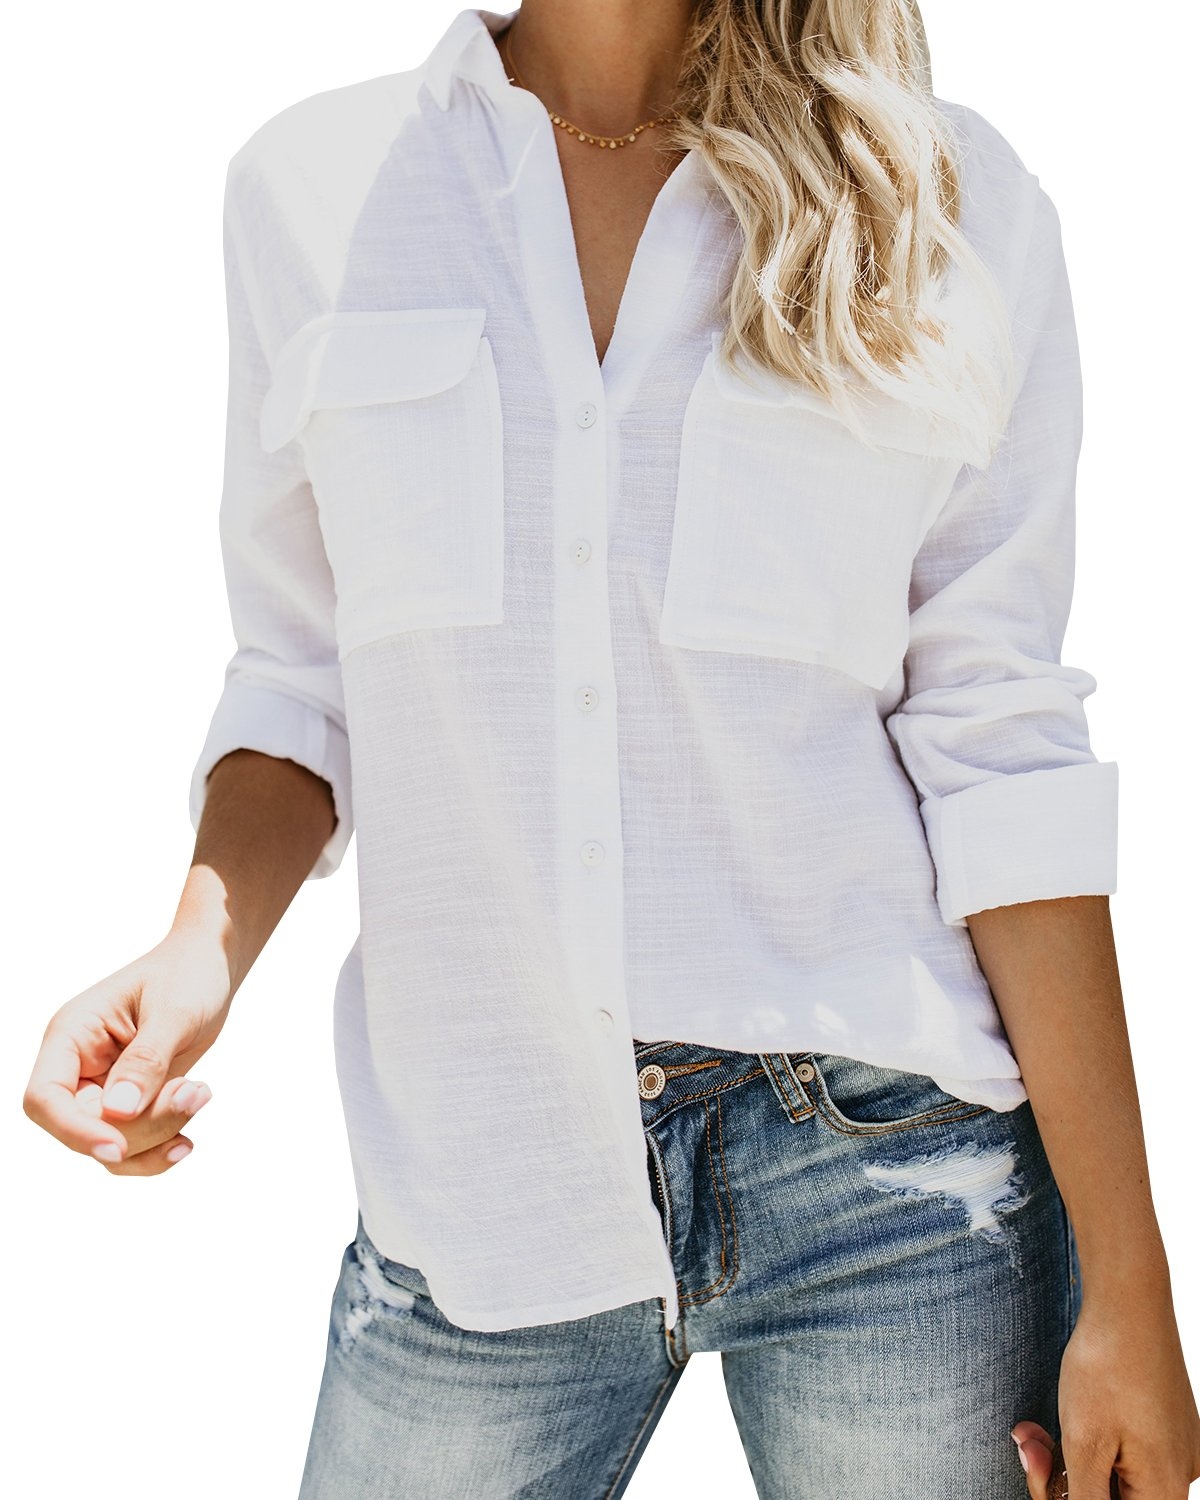 Runcati Womens Button Down V Neck T Shirts Roll up Long Sleeve Blouse Loose Fit Casual Work Plain Tops with Pockets